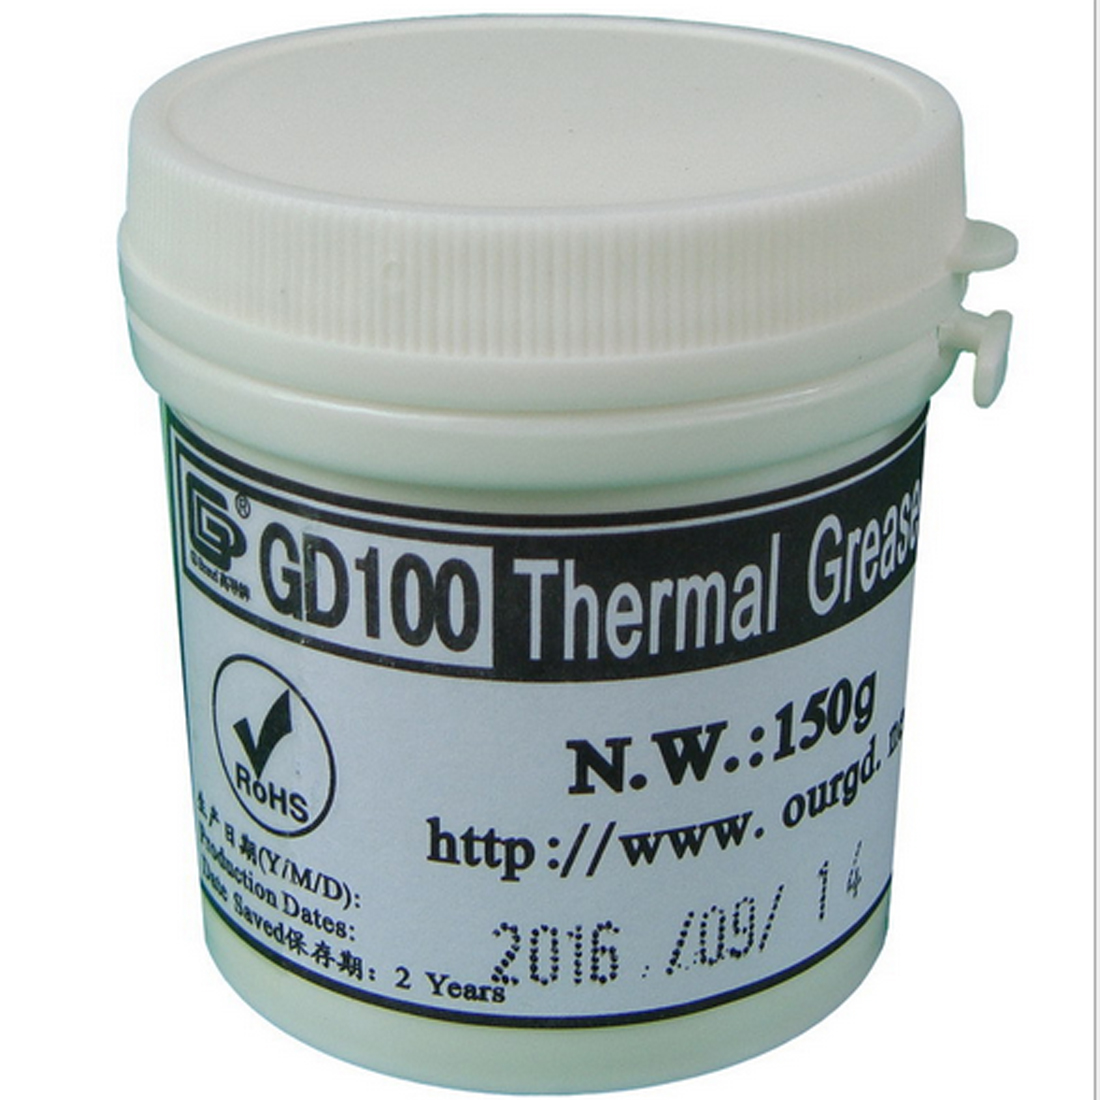 NOYOKERE Hot Heat Sink Plaster Compound GD100 Thermal Conductive Grease Paste Silicone Net Weight 150 Grams White For CPU CN150